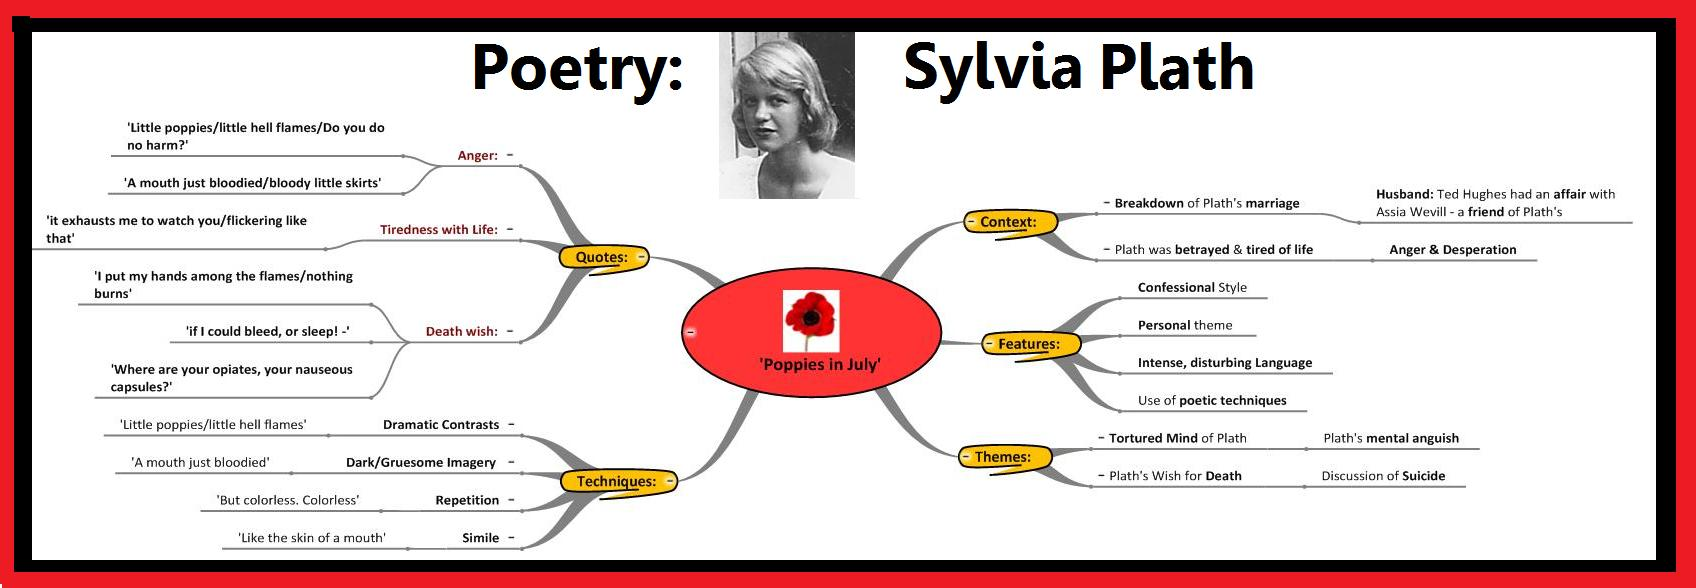 thesis statement for sylvia plath Thesis statement for metaphors by sylvia plath thesis statement for metaphors by sylvia plath professional paper writing service #1 https://papercoachnet/rt=kf6otyek.